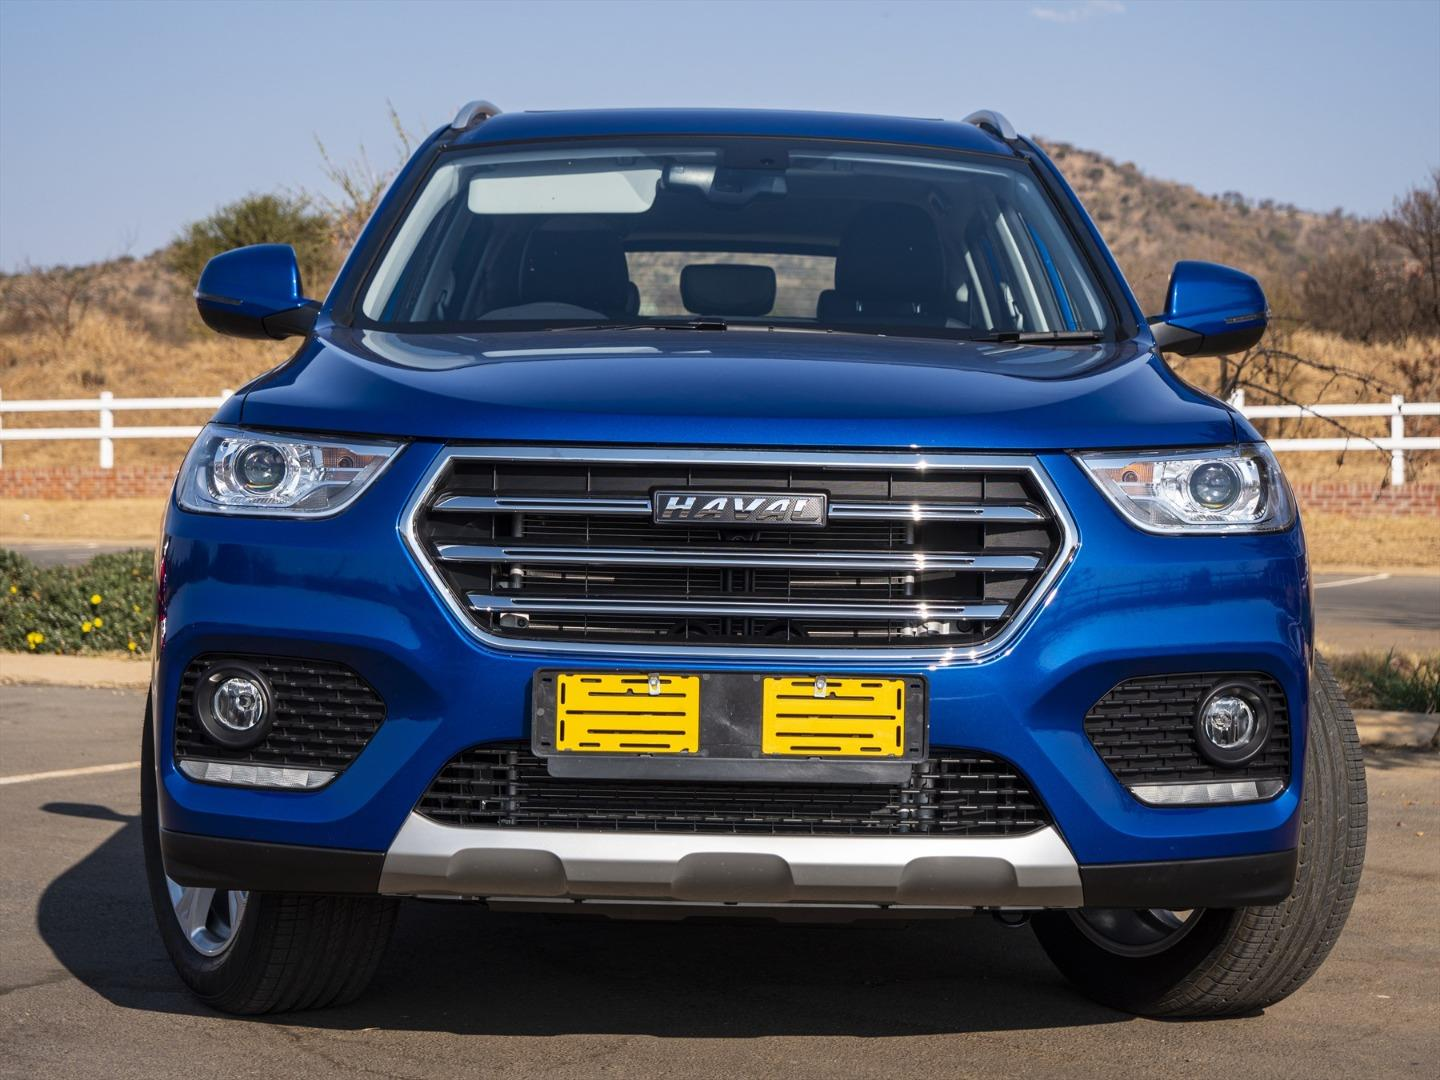 2020 Haval H2 1.5T Luxury